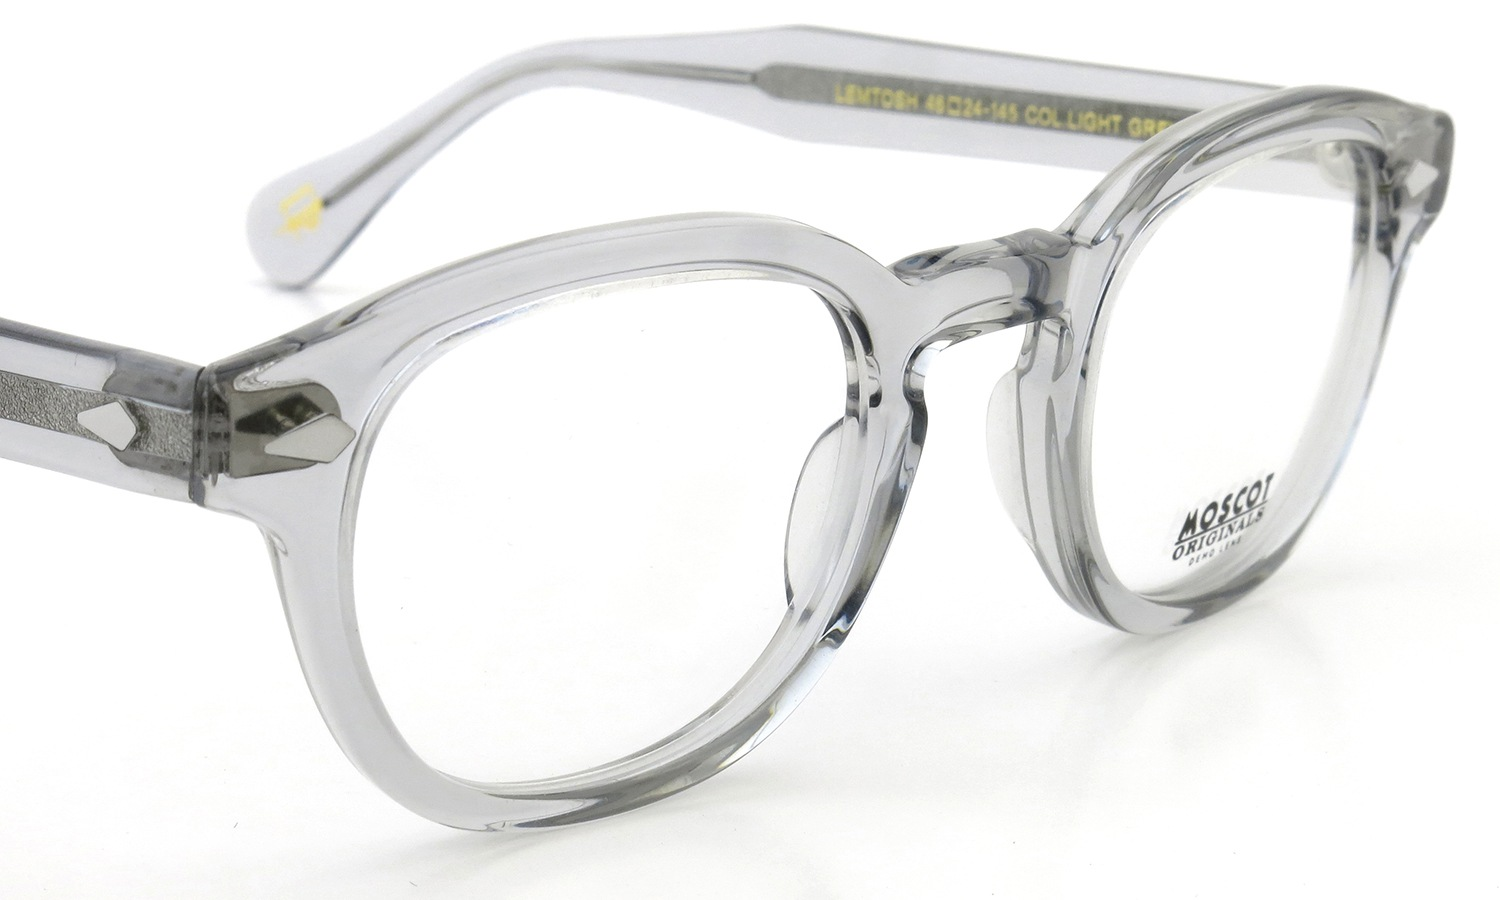 MOSCOT LEMTOSH LIGHT GREY 46